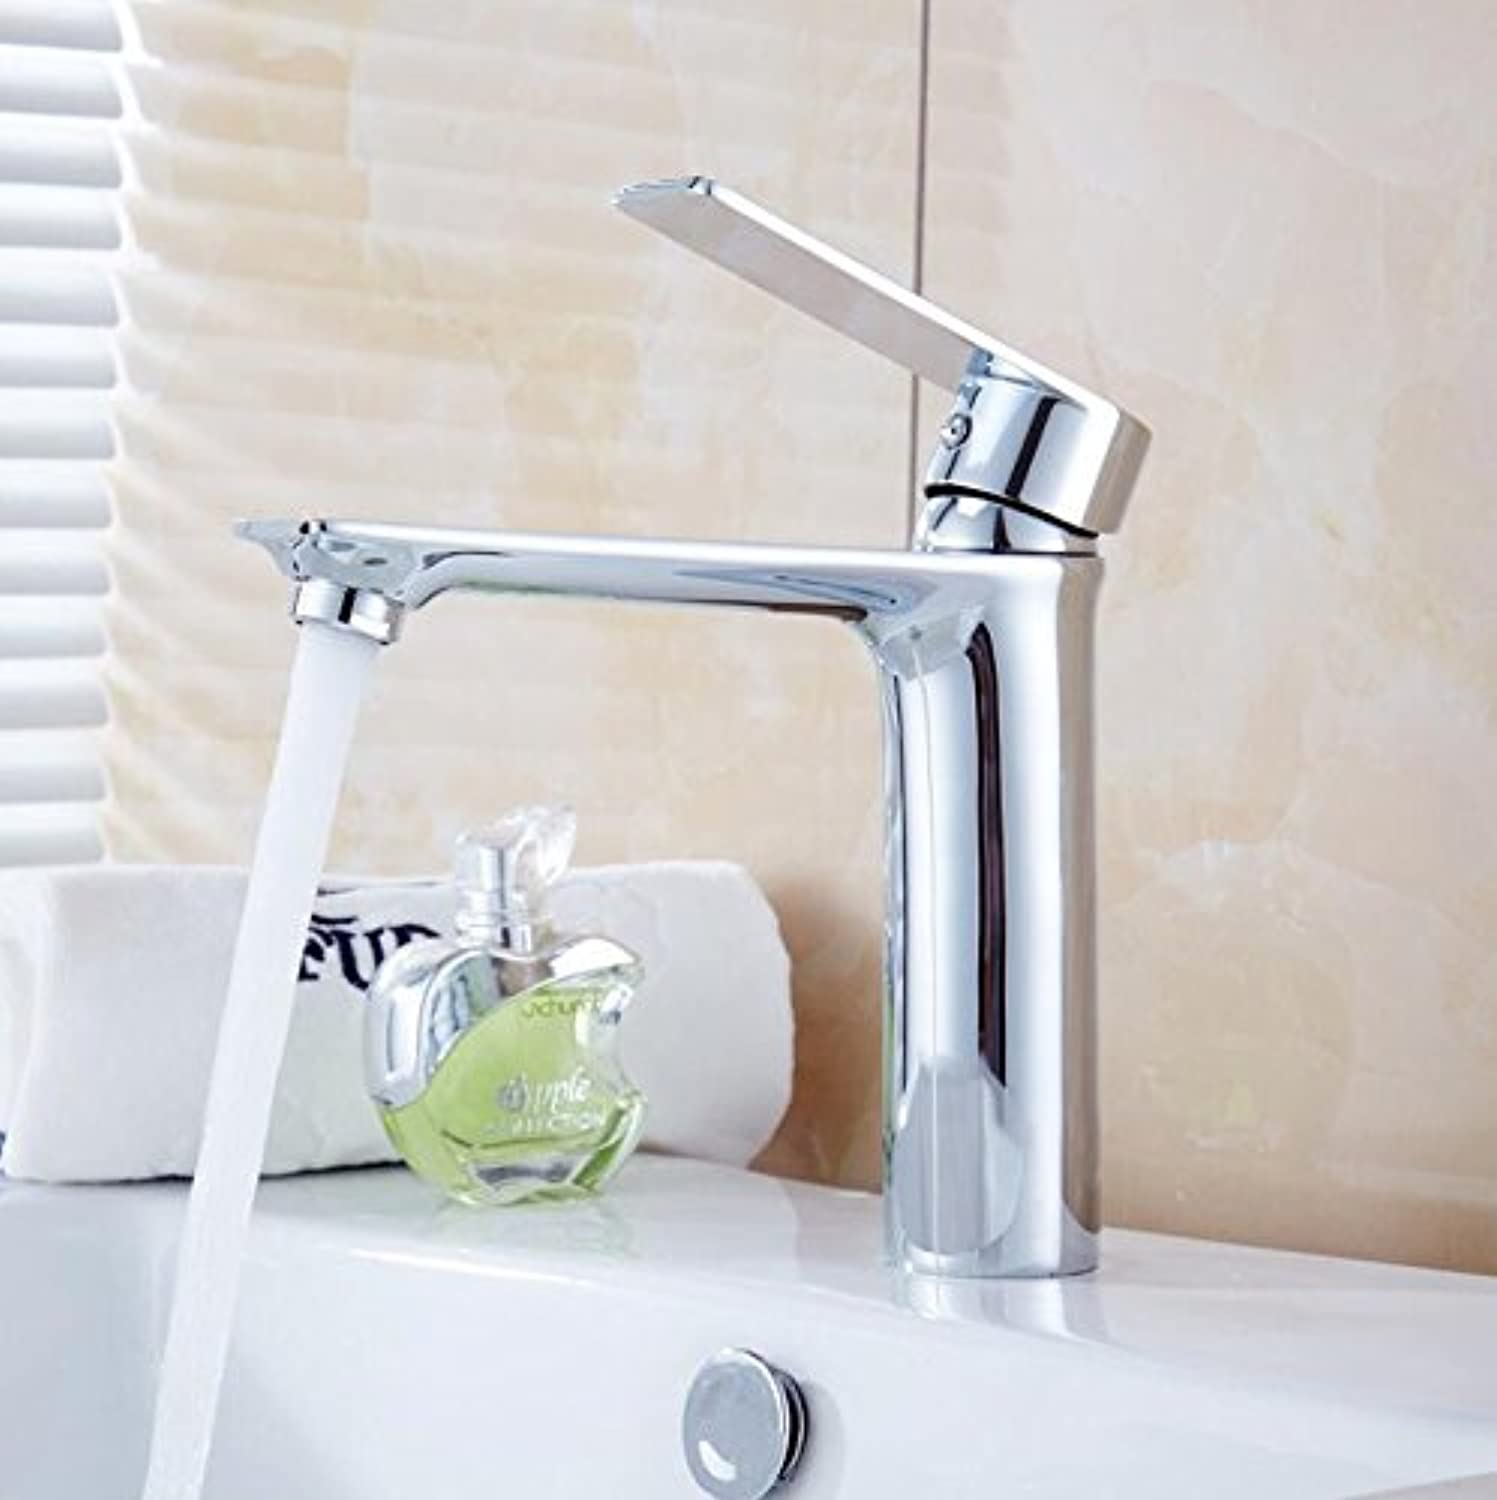 Decorry Bathroom Basin Faucet Brass Body tap New Luxury Single Handle hot and Cold tap B0909